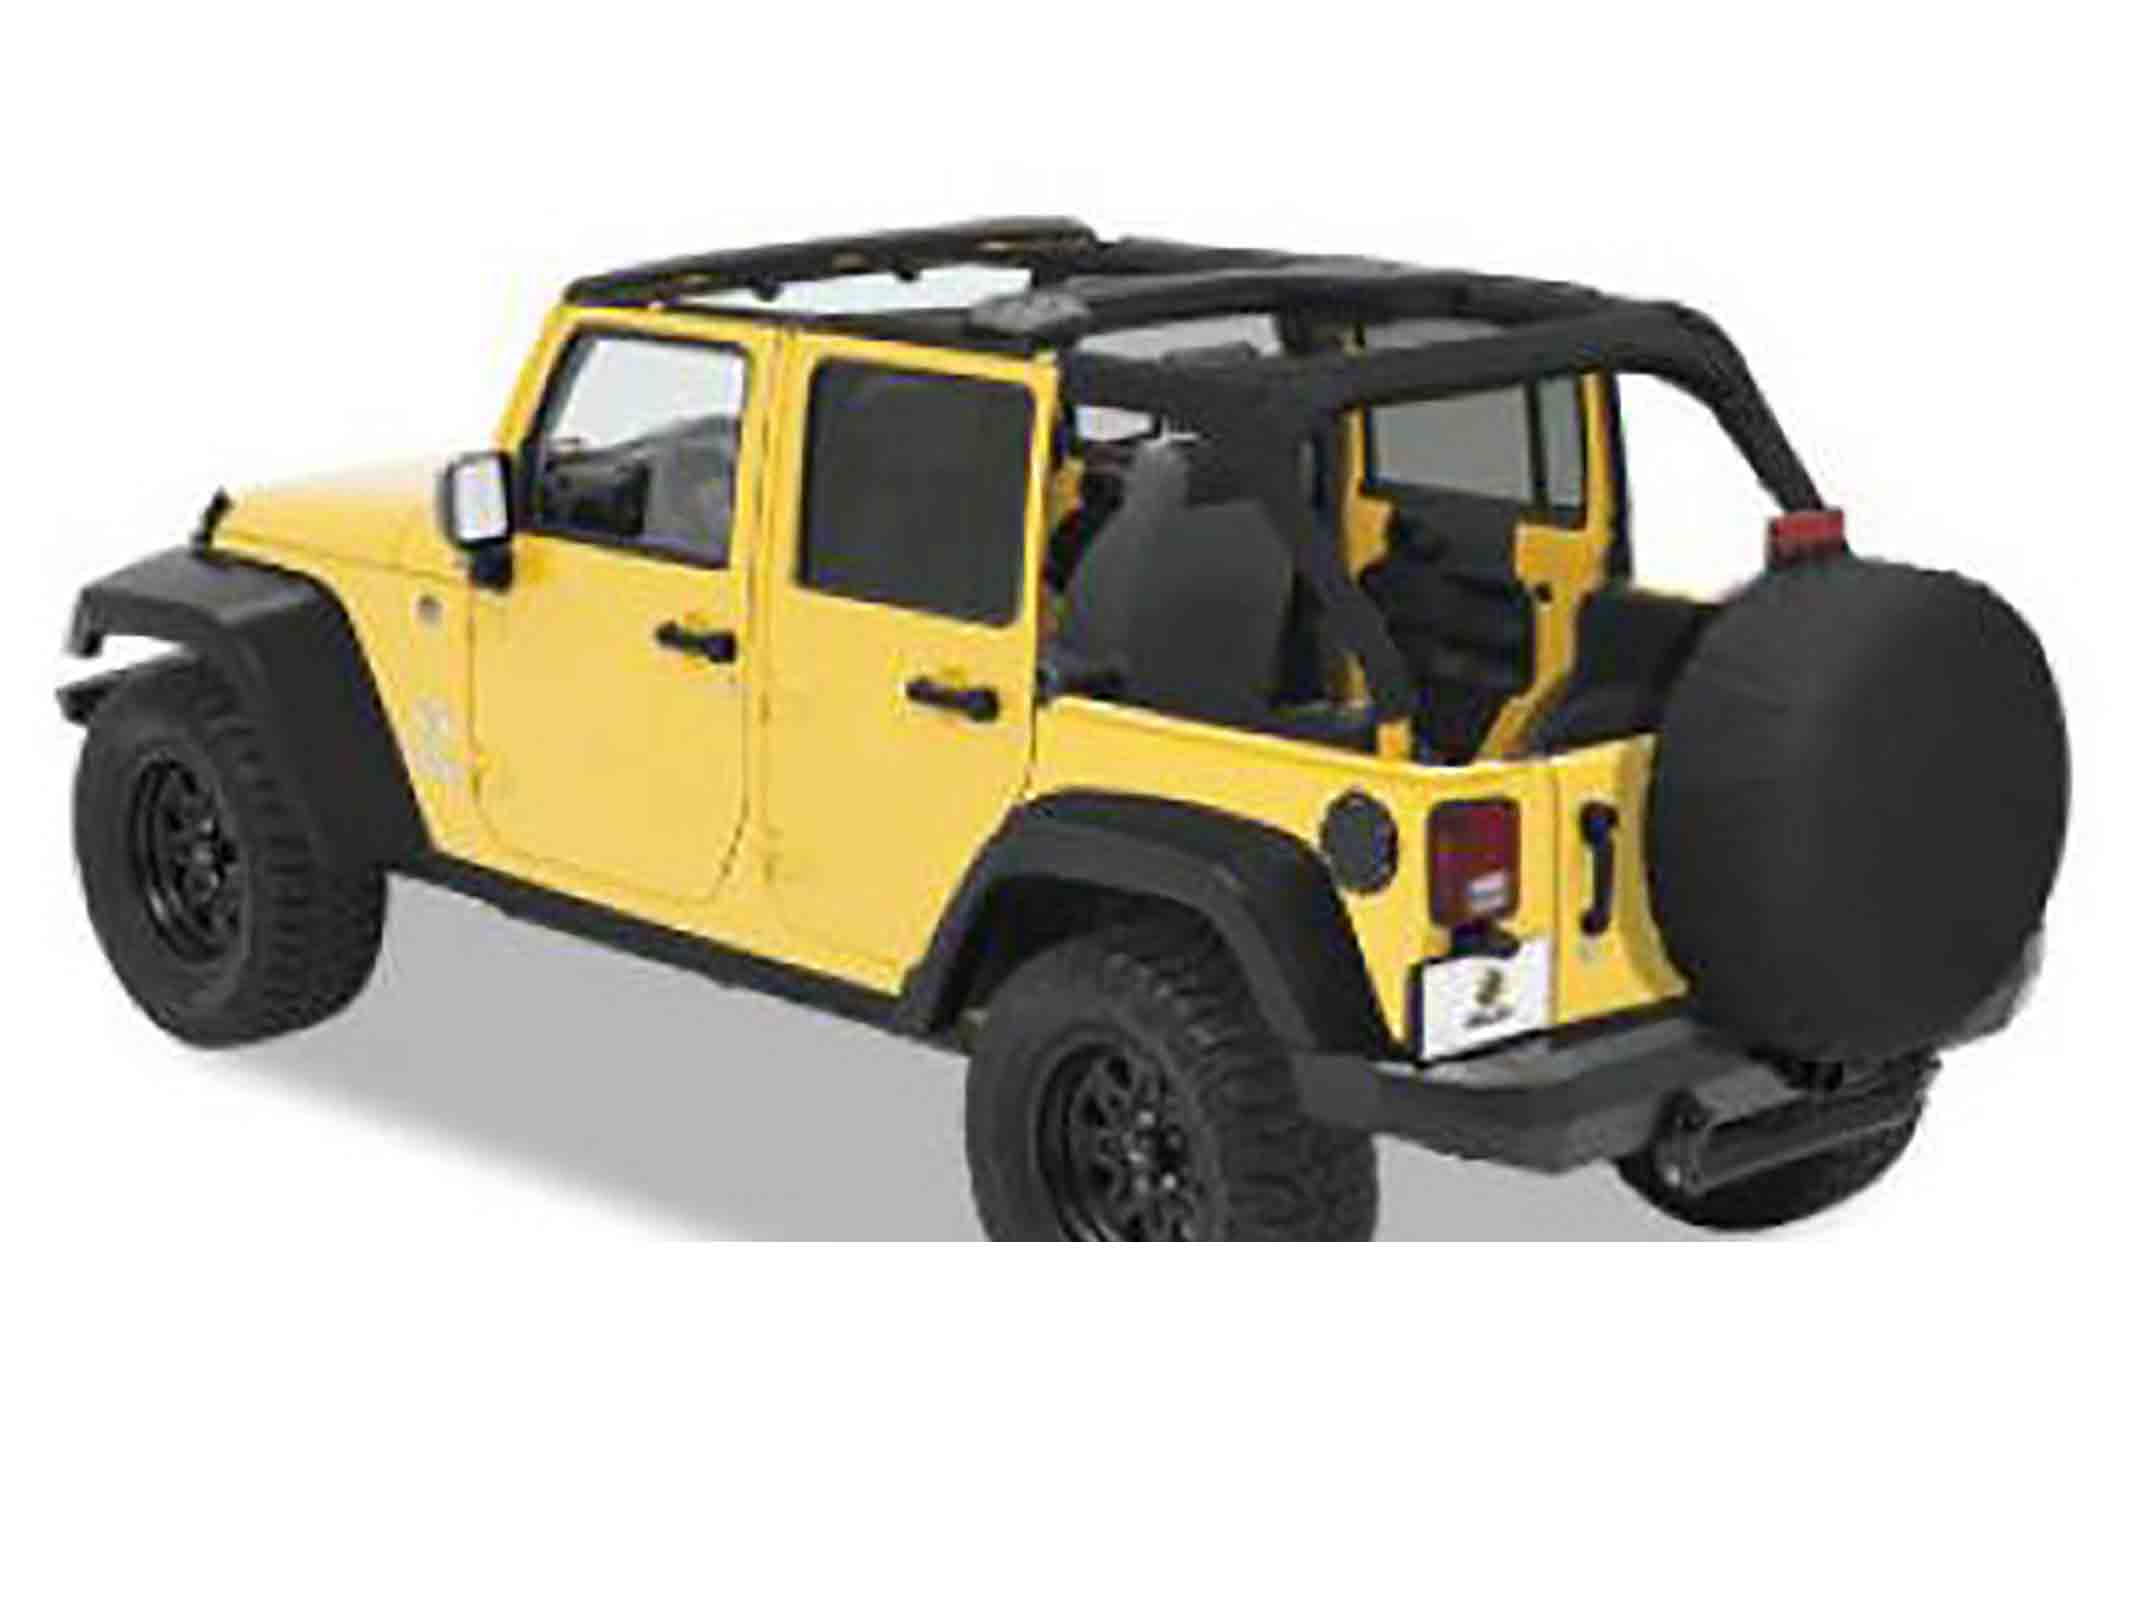 Imbottitura rollbar wrangler jk unlimited 07 17 black diamond ricambi jeep